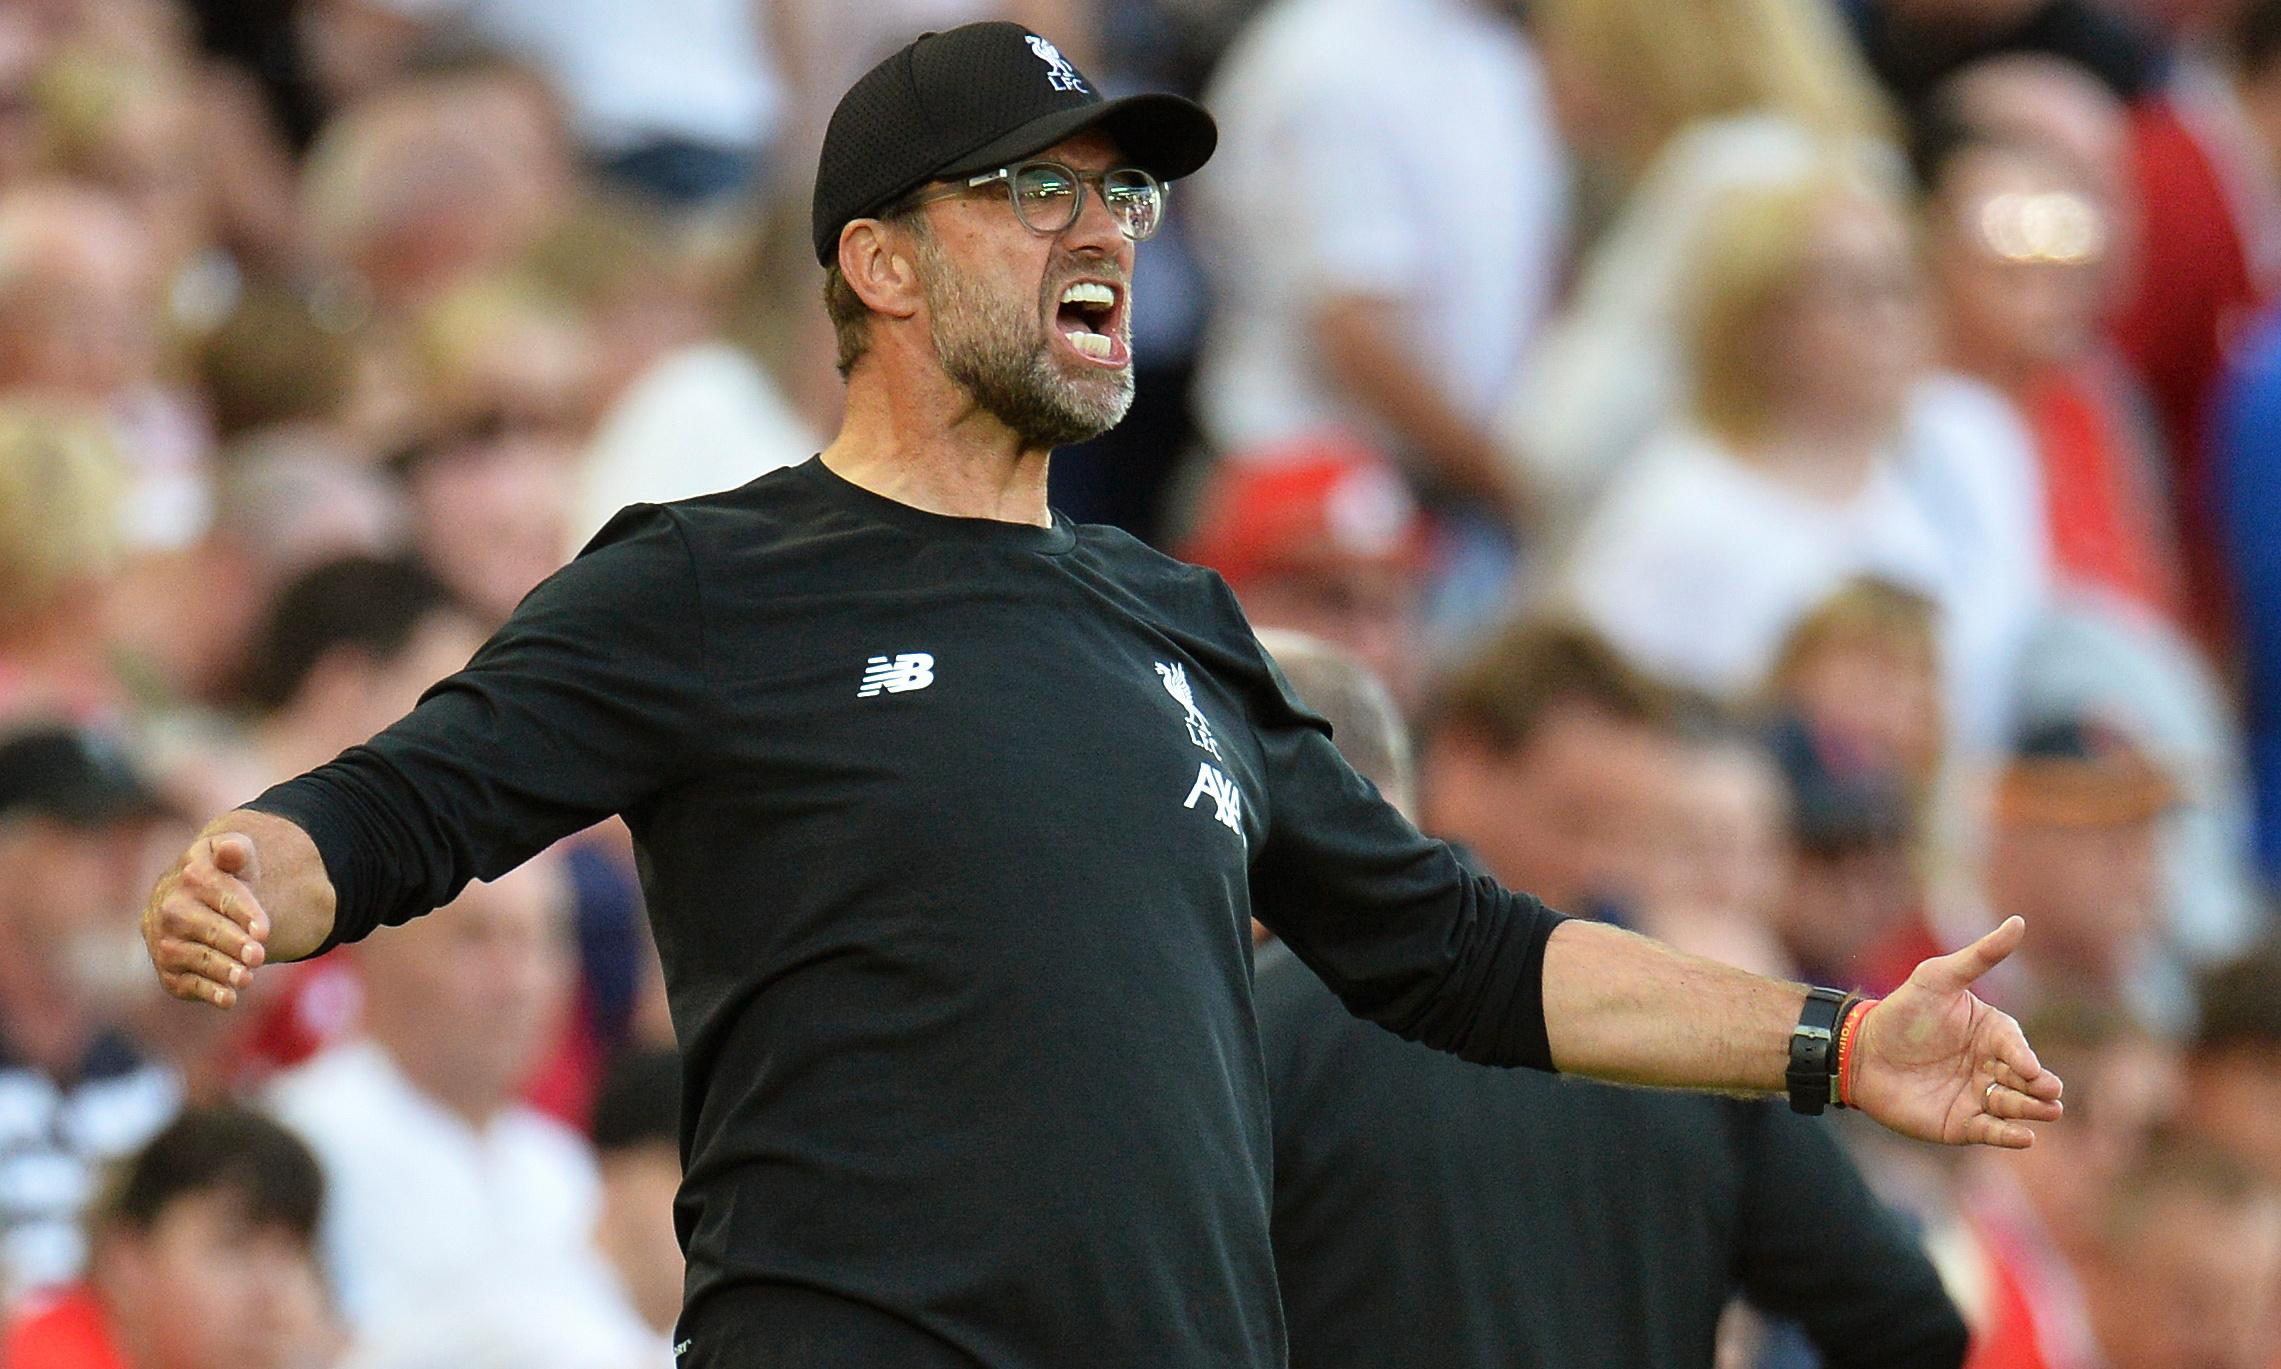 Jürgen Klopp's creative chaos brings new meaning to the 'Liverpool way'